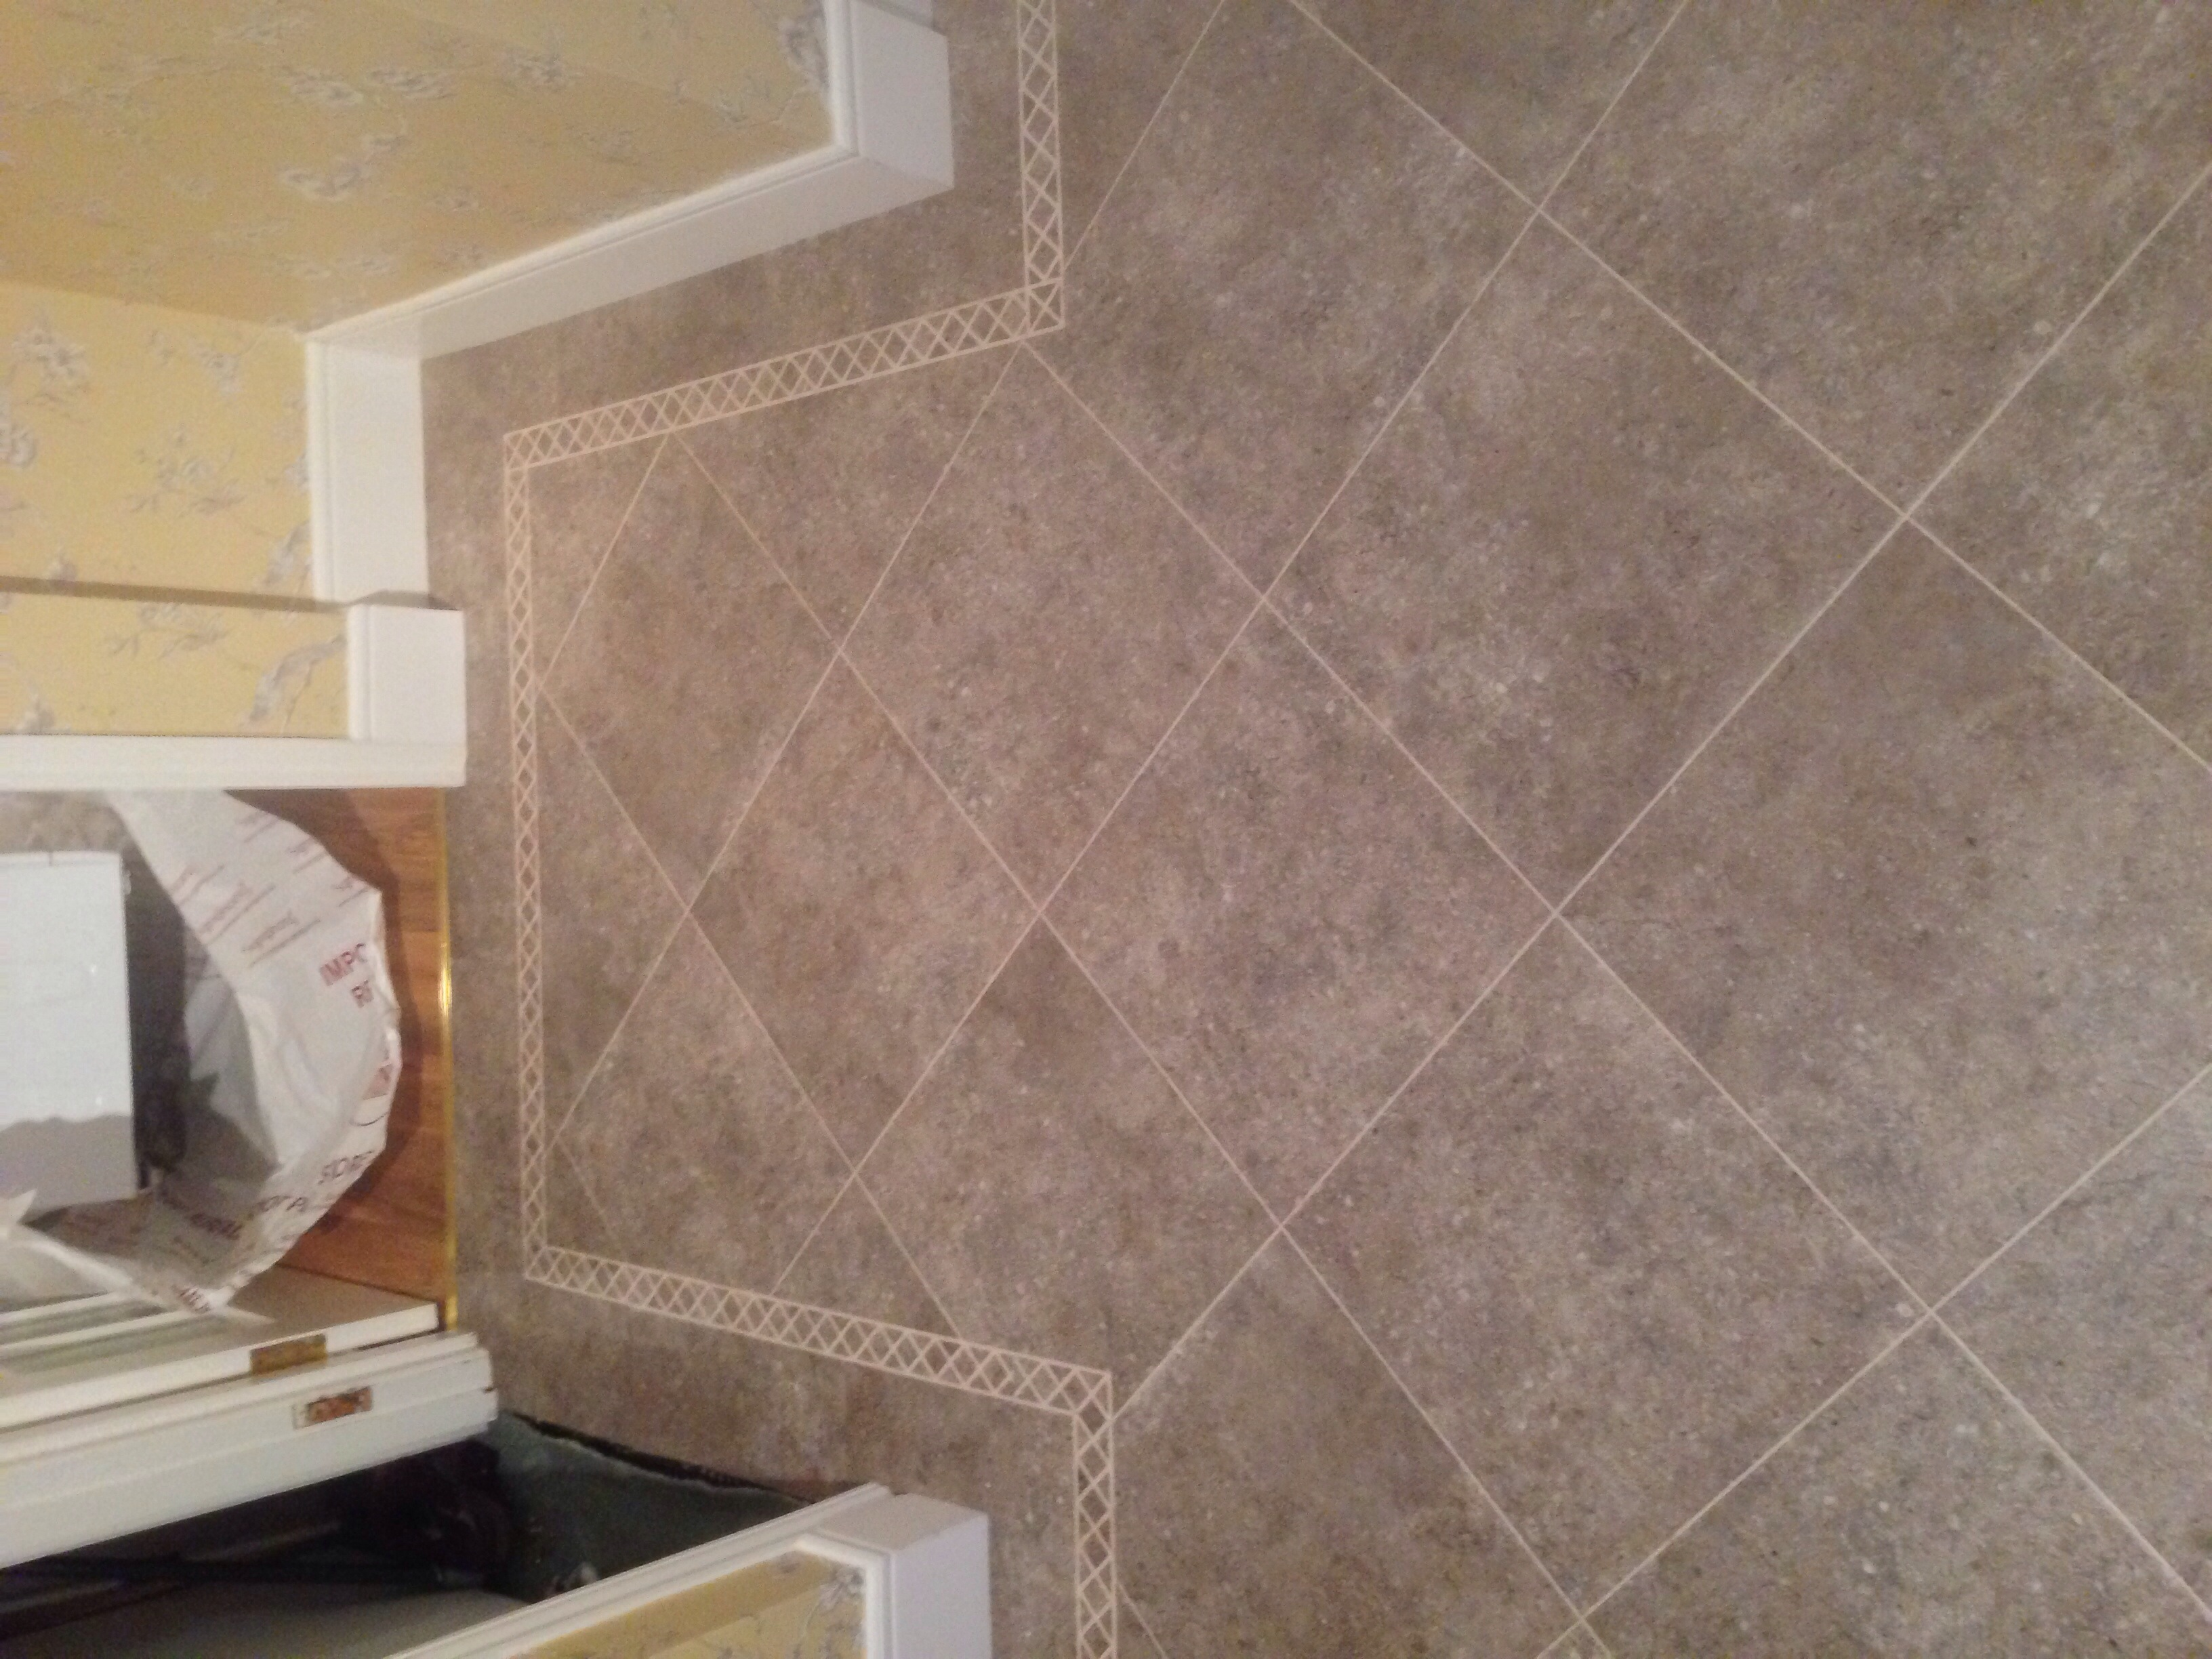 Karndean tile with border k flooring quality floor fitting 20140527 225400 82440776g dailygadgetfo Choice Image